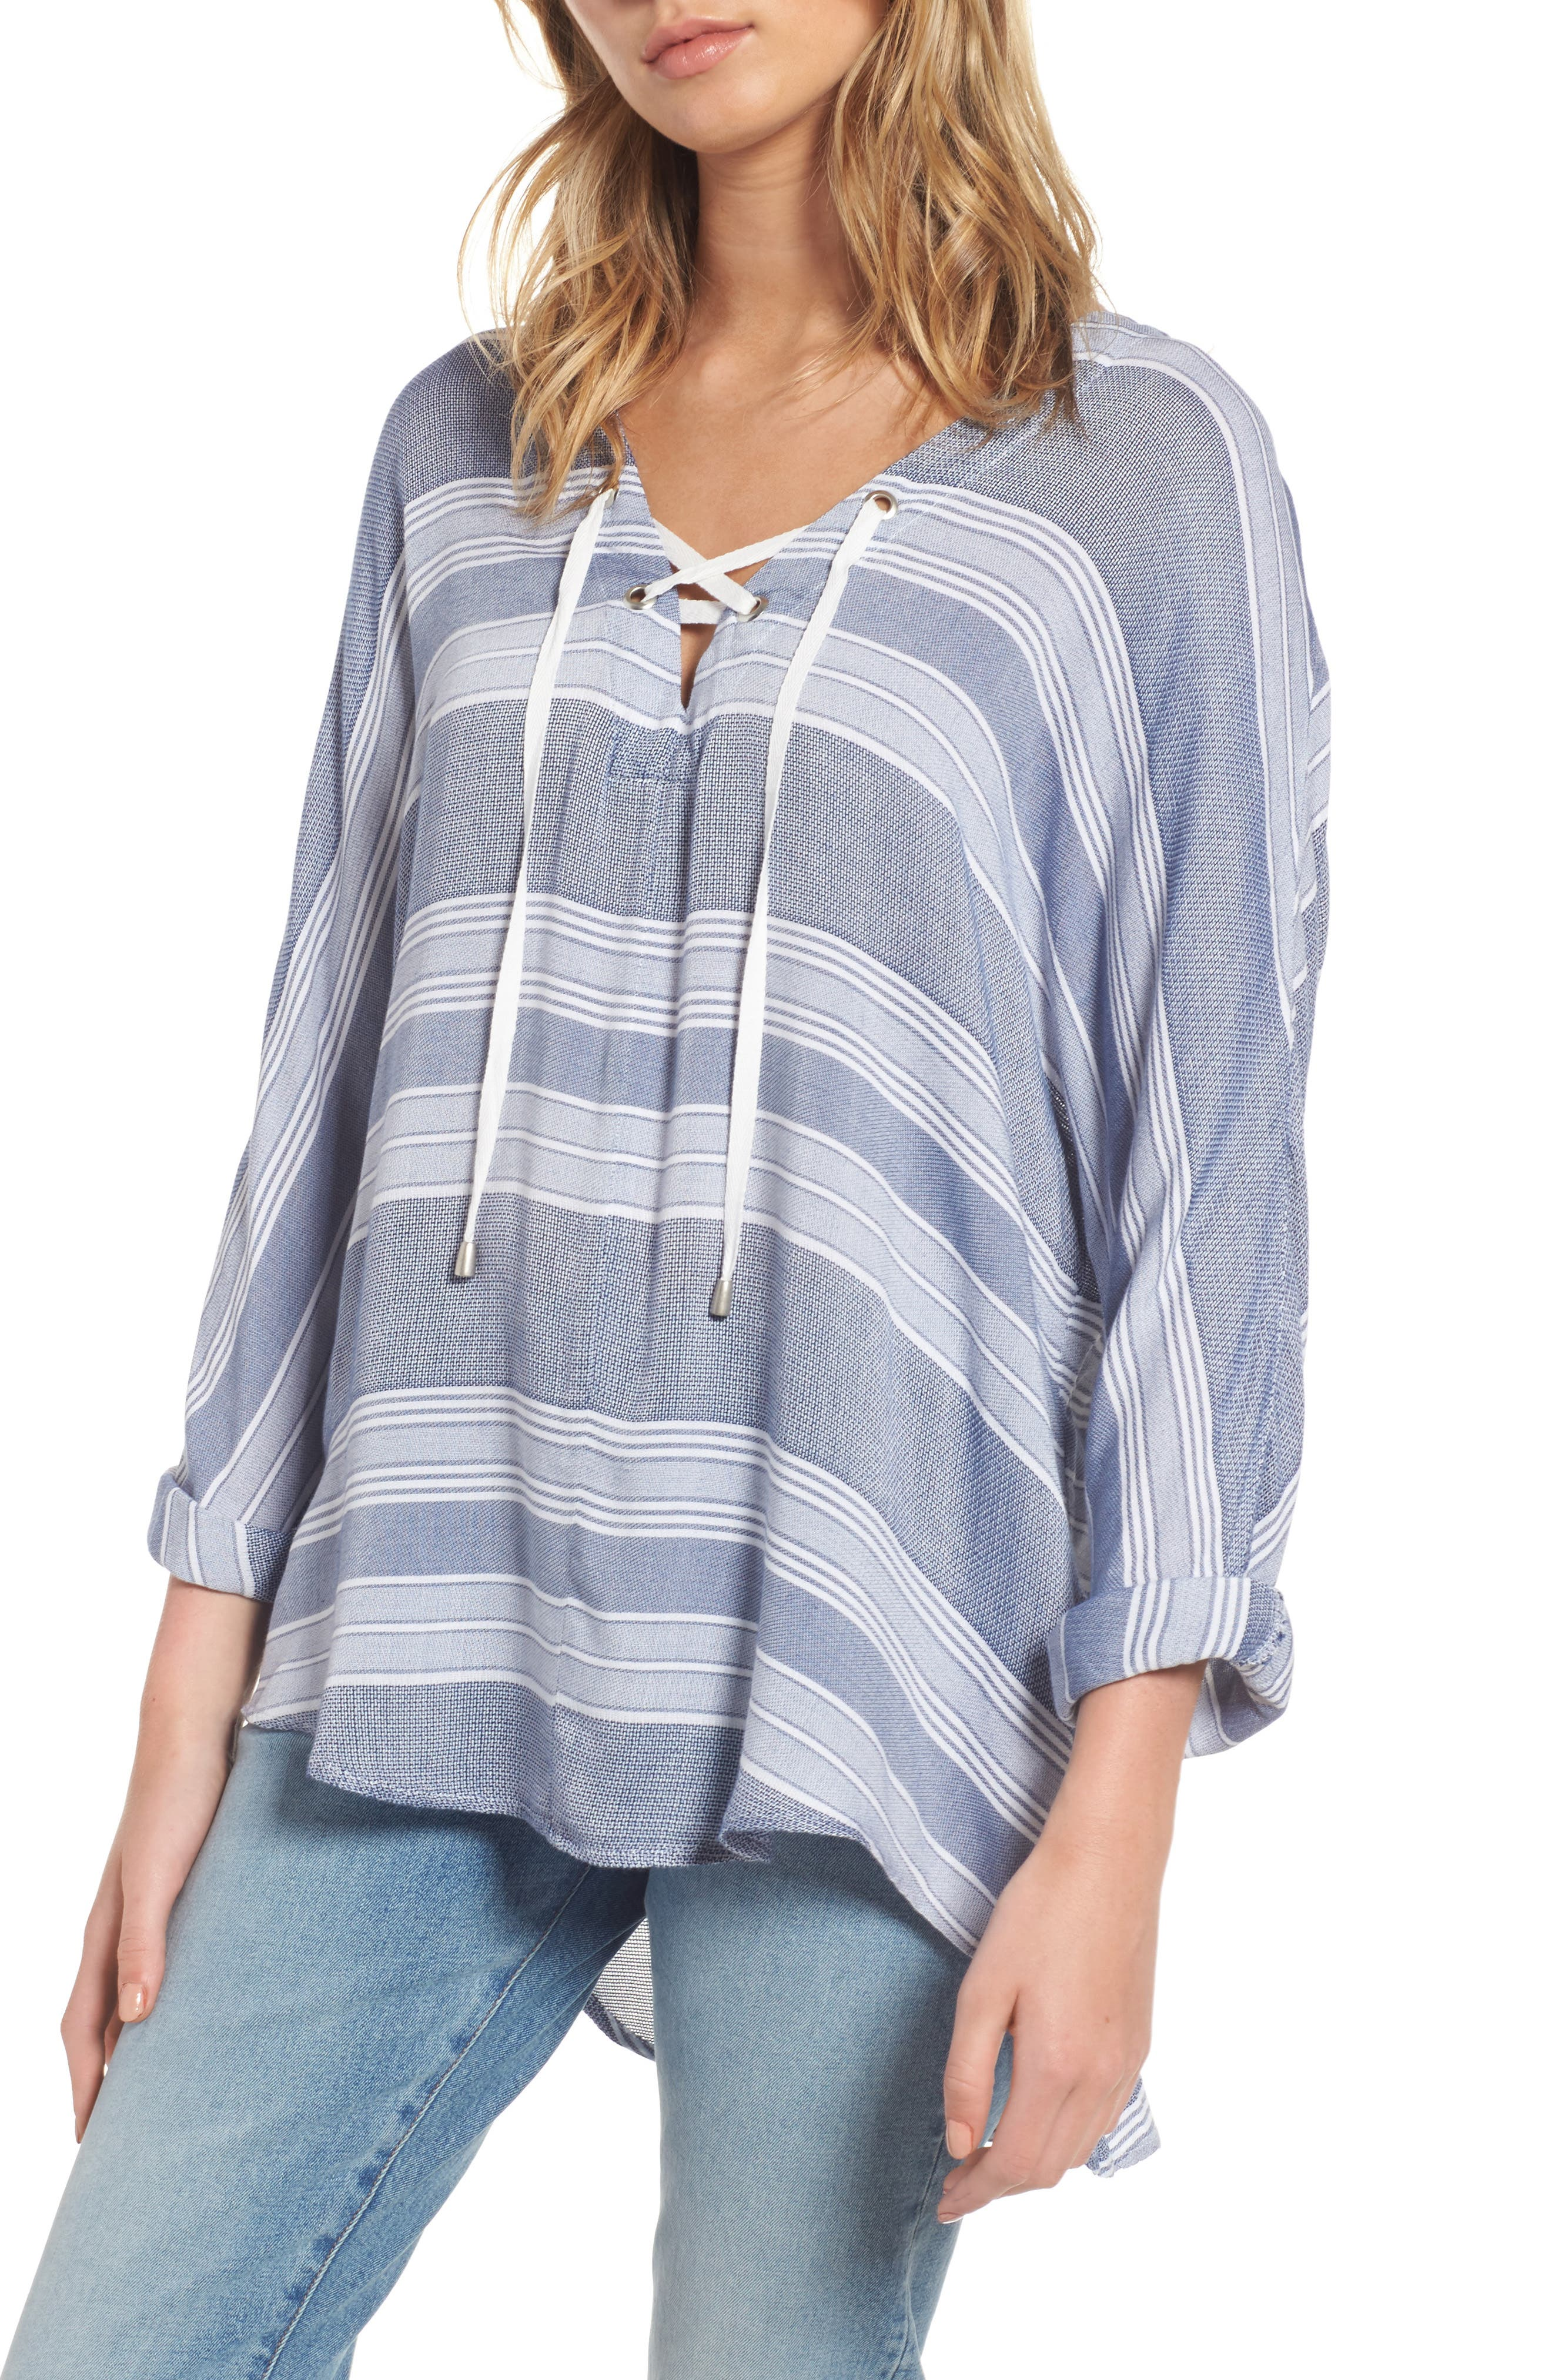 Alternate Image 1 Selected - Rails Lily Stripe Drawstring Top